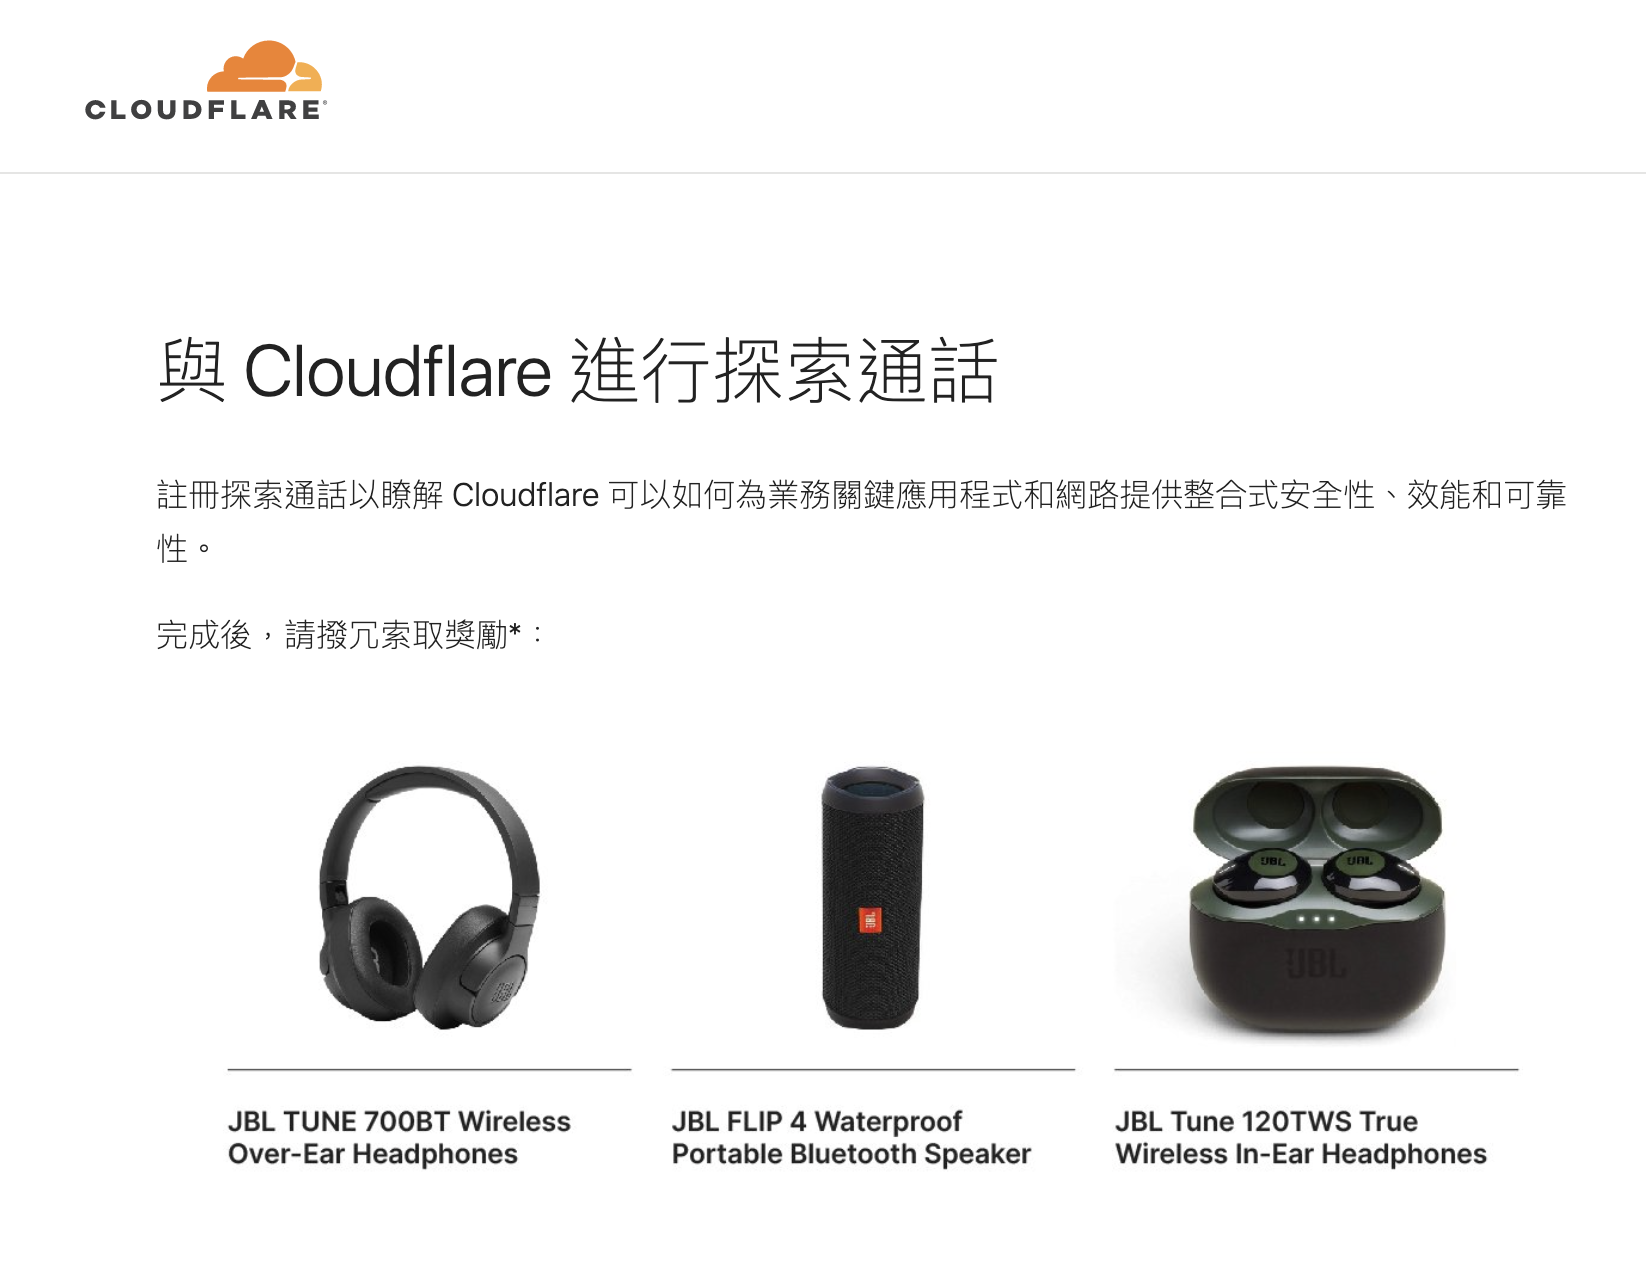 Chat with Cloudflare and get a gift on us